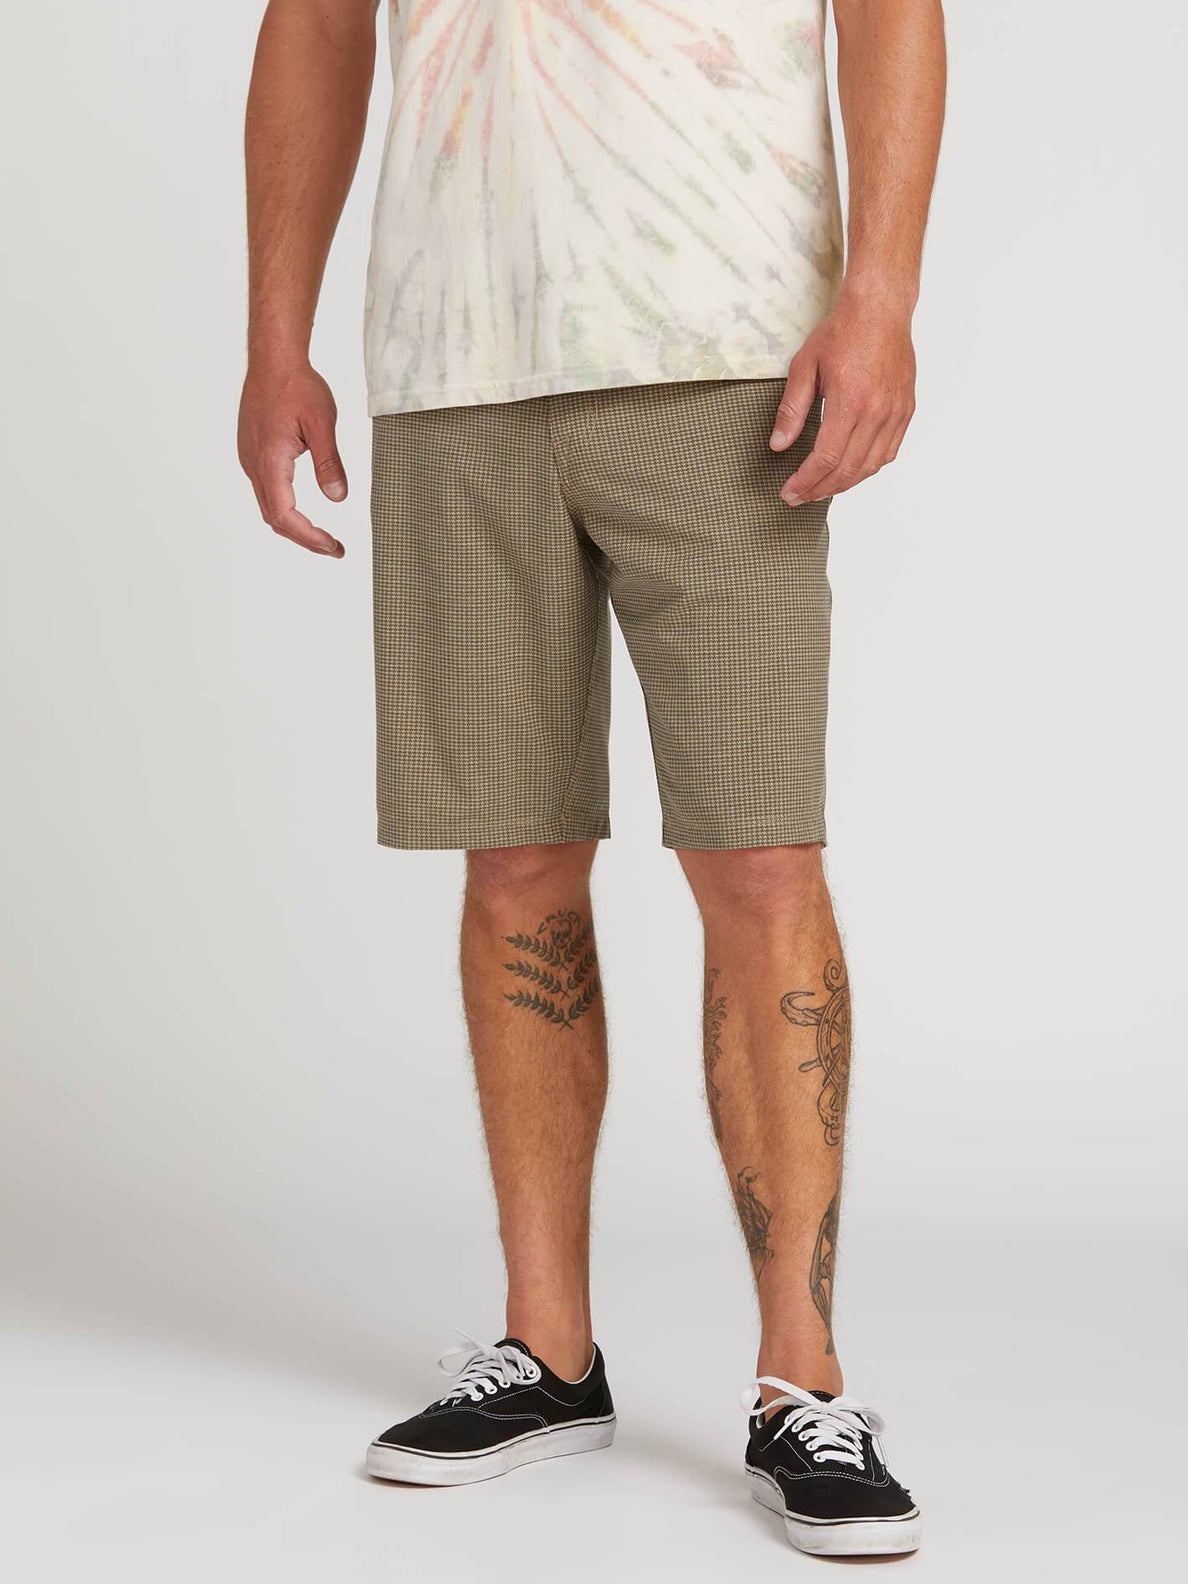 Frickin Surf N' Turf Mix Hybrid Shorts In Mushroom, Front View